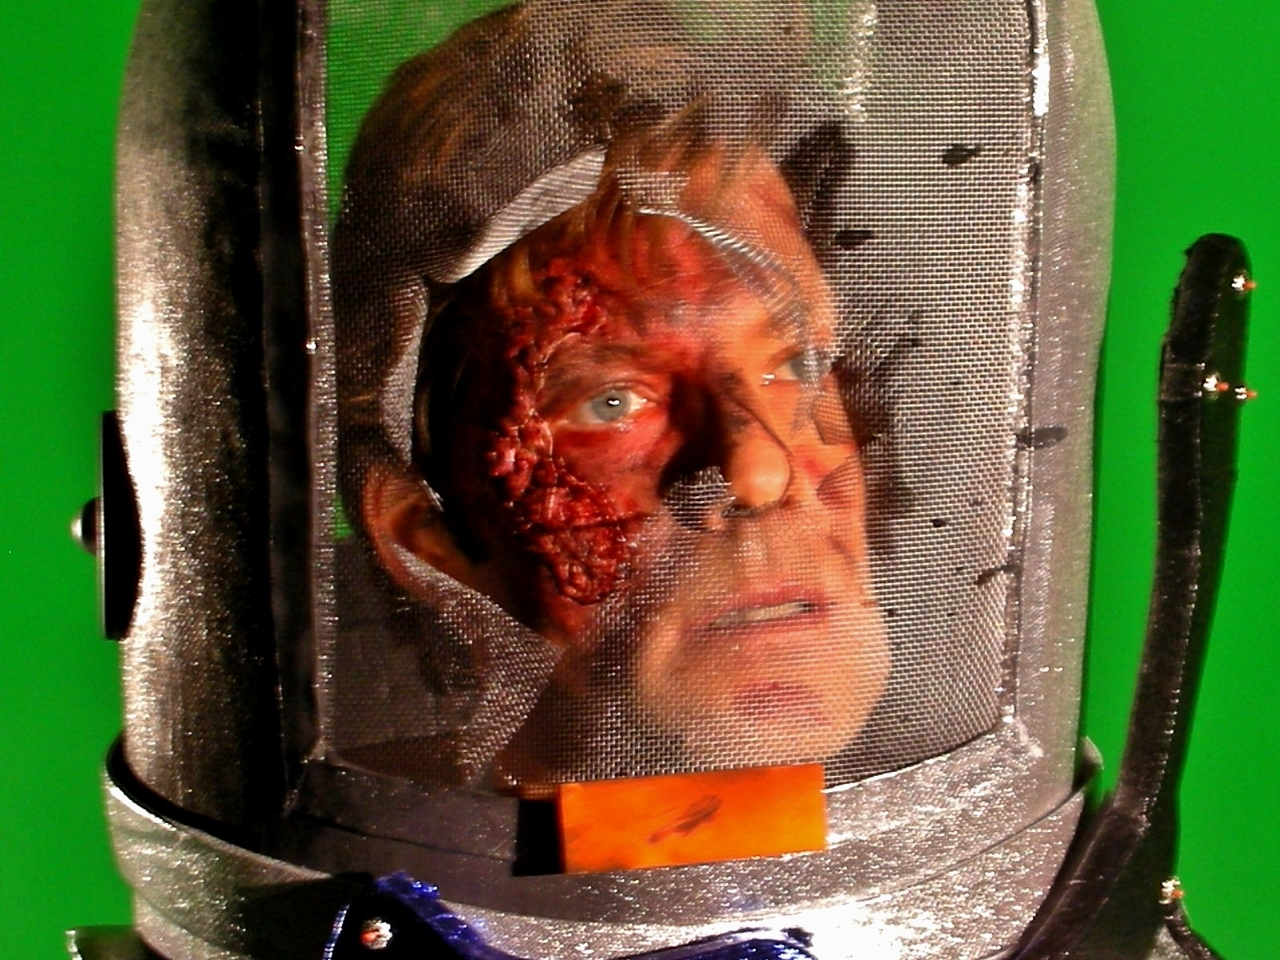 Jamie Bamber as Simone, Severe Radiation Burn, Star Trek Continues Ep1, McNulty Nielsen Studios - Sculpt, Application by Tim Vittetoe, ImpaQt FX